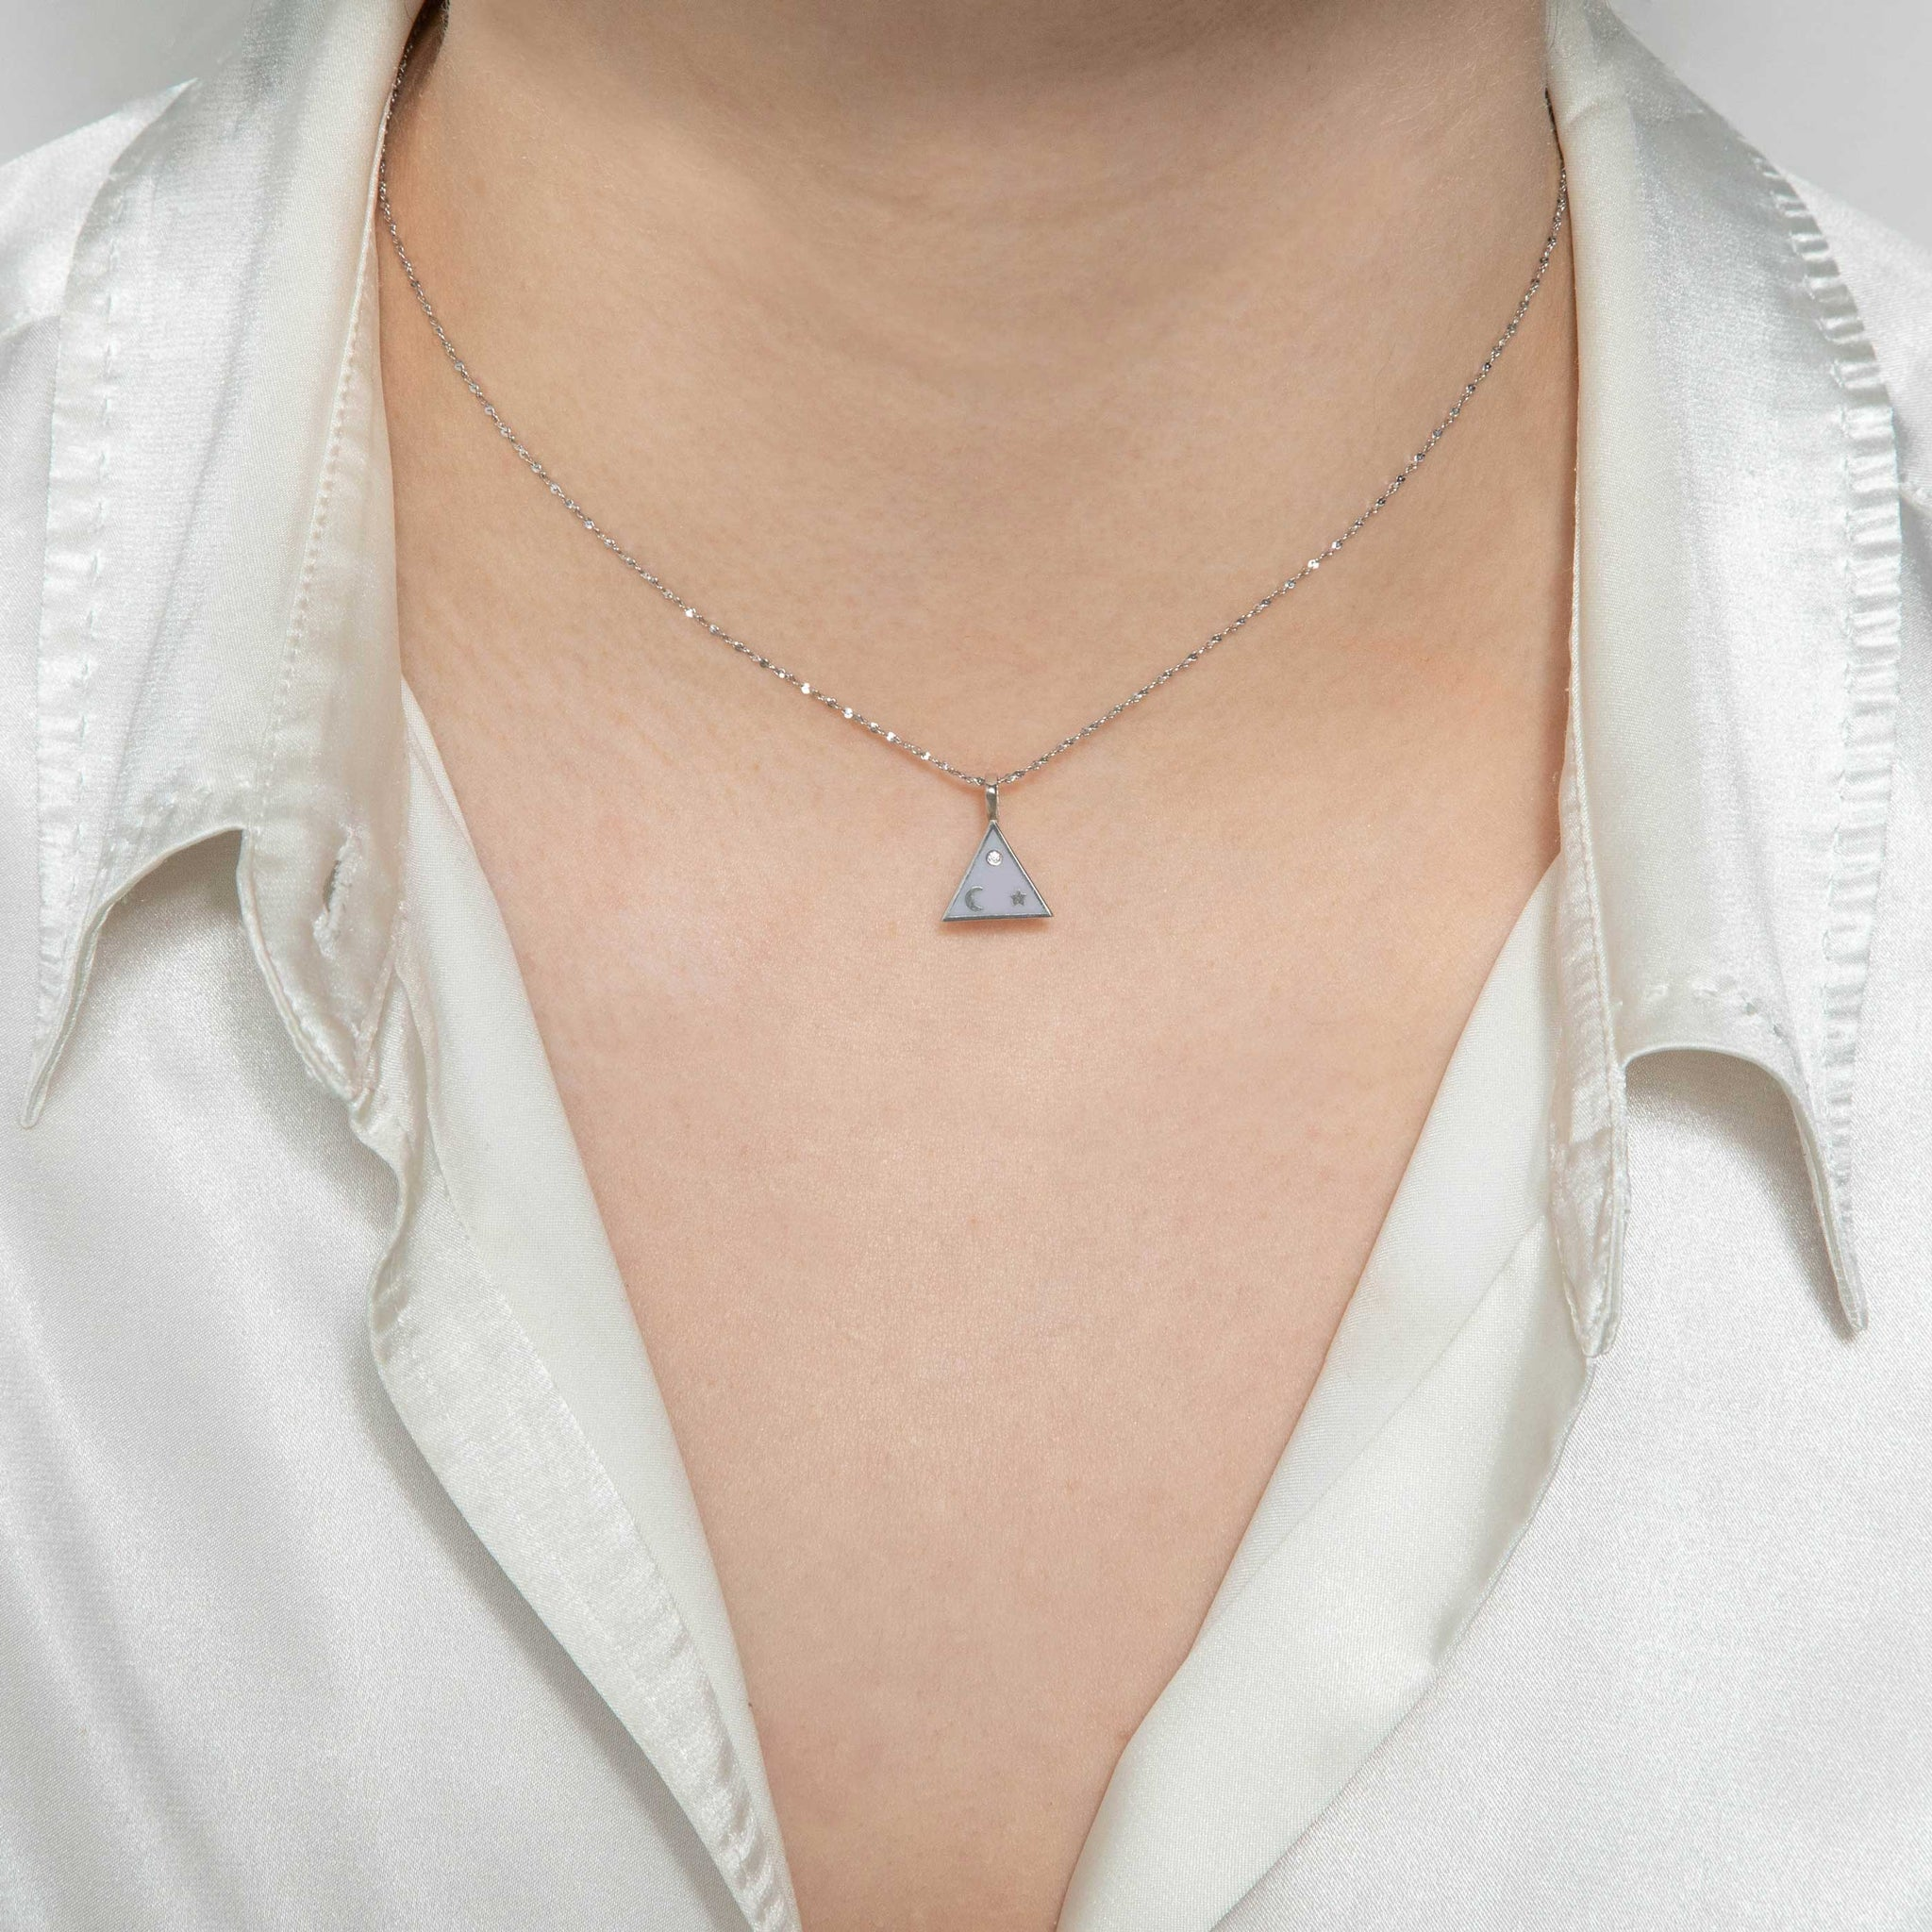 Triangle & Enamel Necklace Charm in Silver